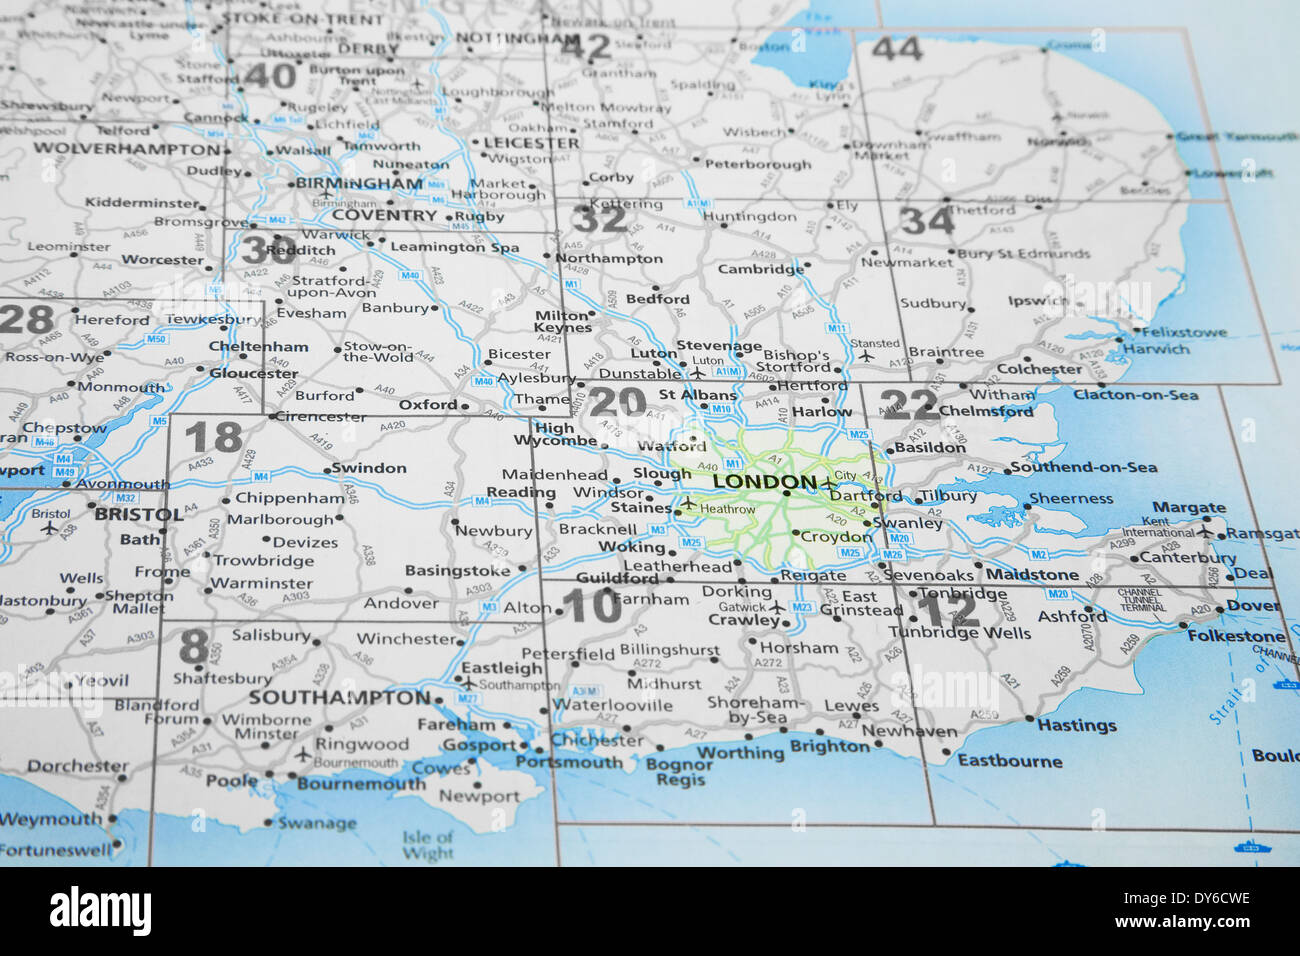 Map Of England South.Map Of South East England With London Highlighted Stock Photo